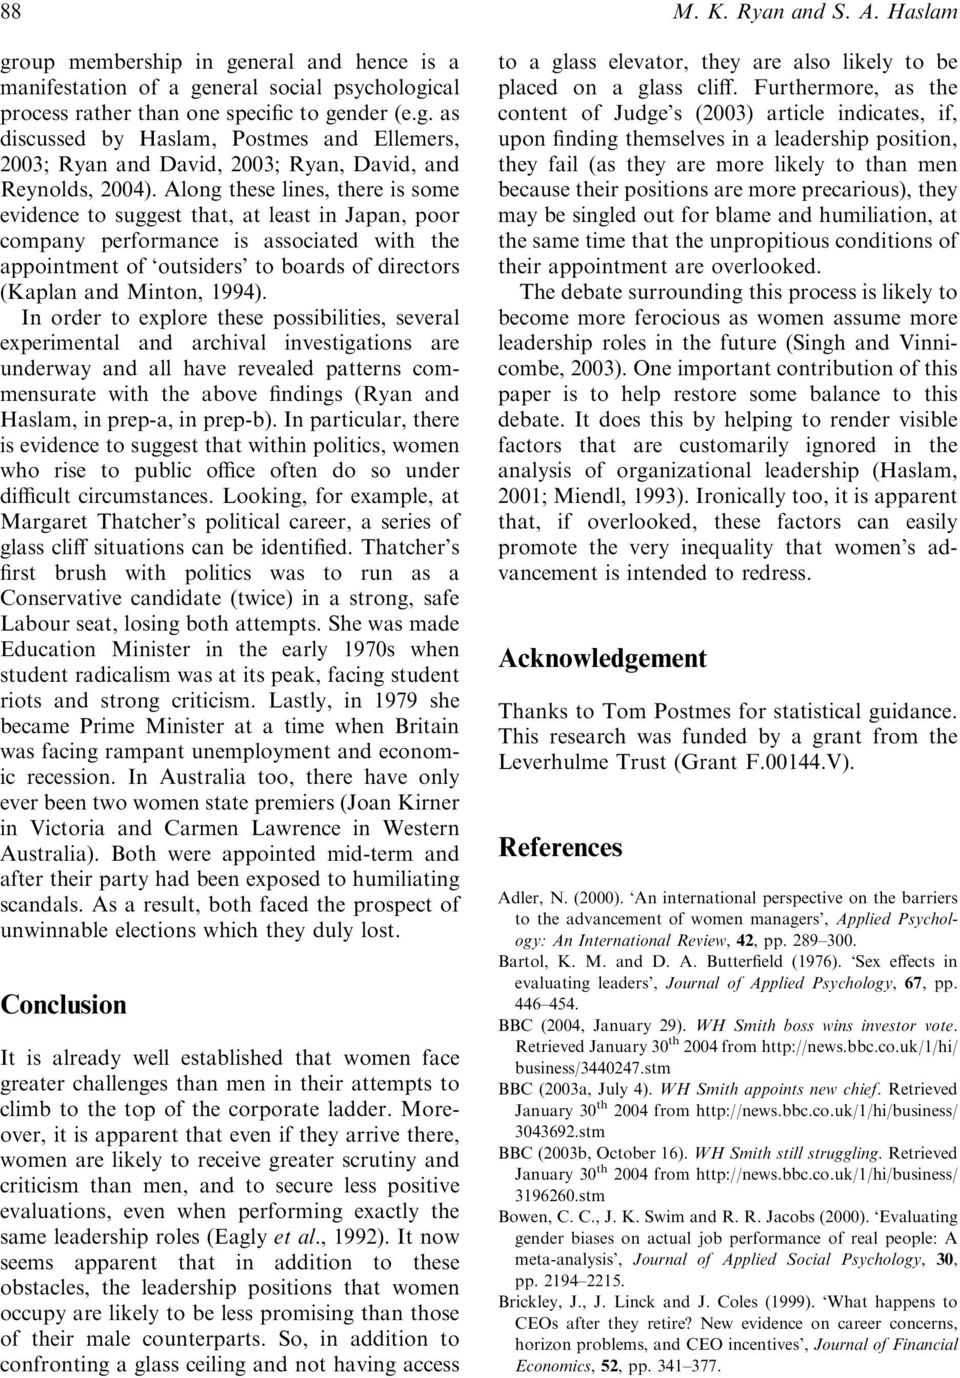 In order to explore these possibilities, several experimental and archival investigations are underway and all have revealed patterns commensurate with the above findings (Ryan and Haslam, in prep-a,